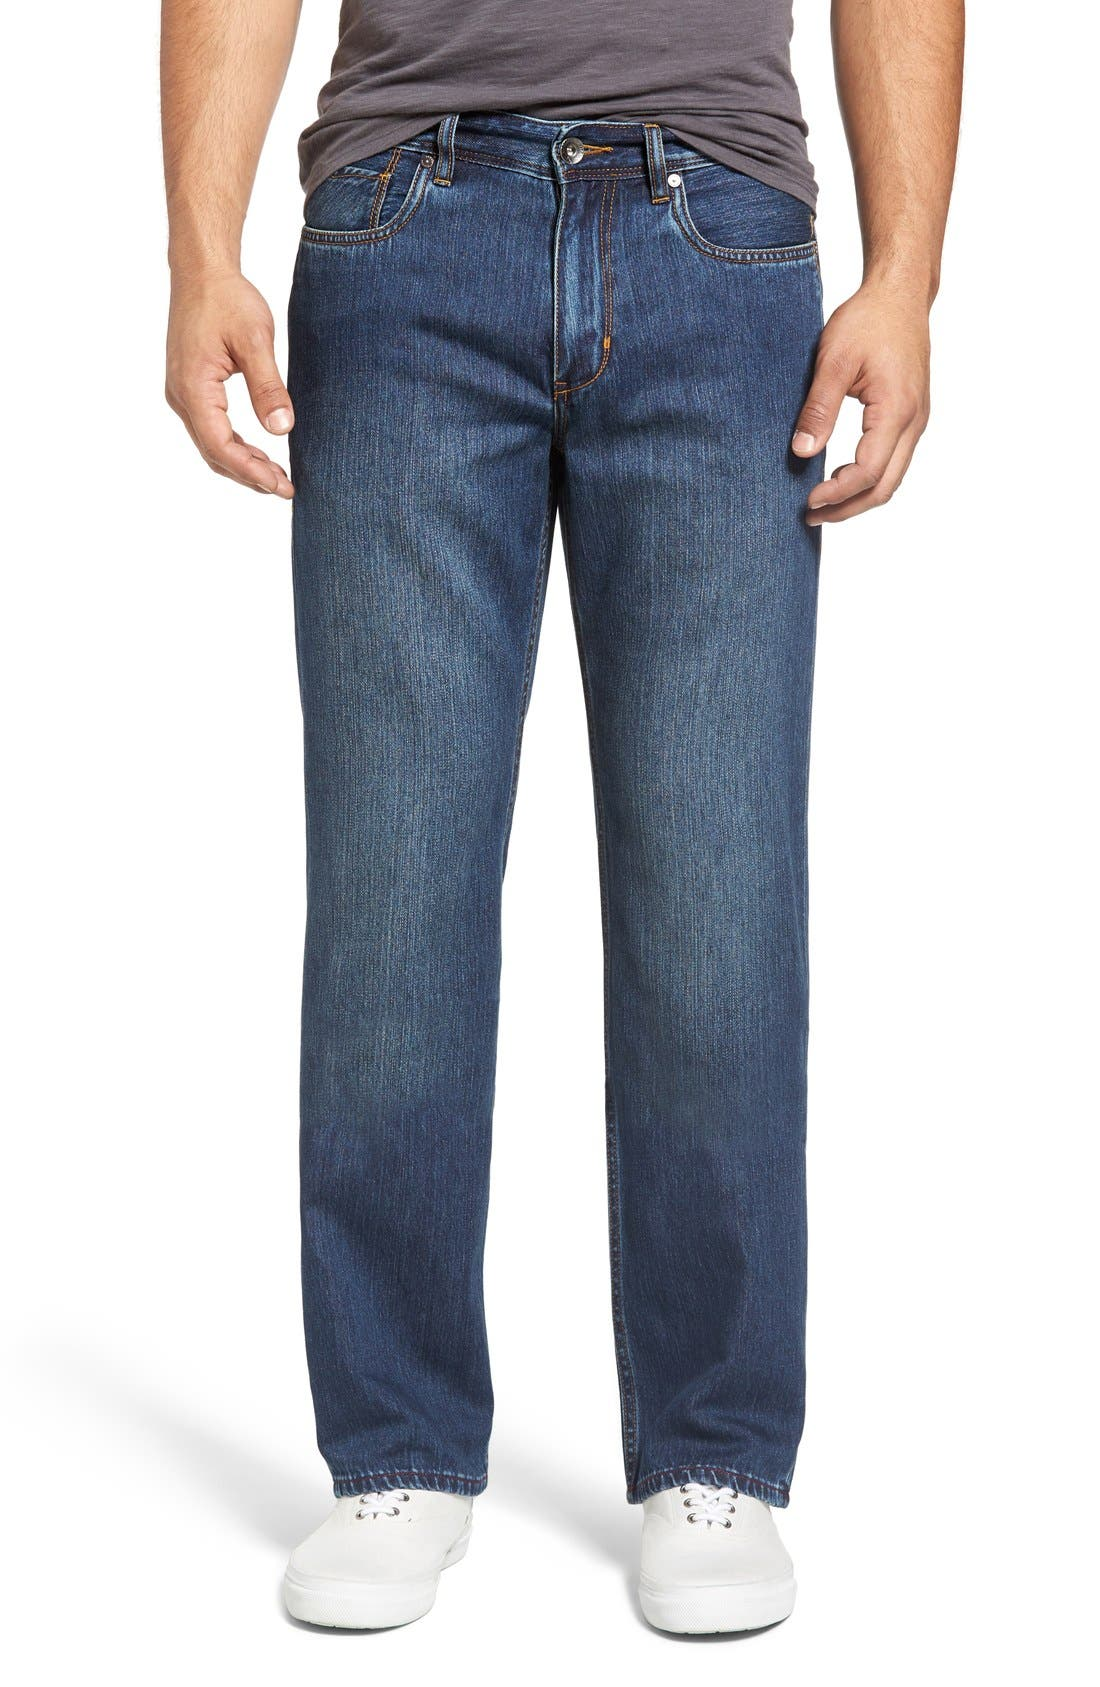 Alternate Image 1 Selected - Tommy Bahama 'Caymen' Relaxed Fit Straight Leg Jeans